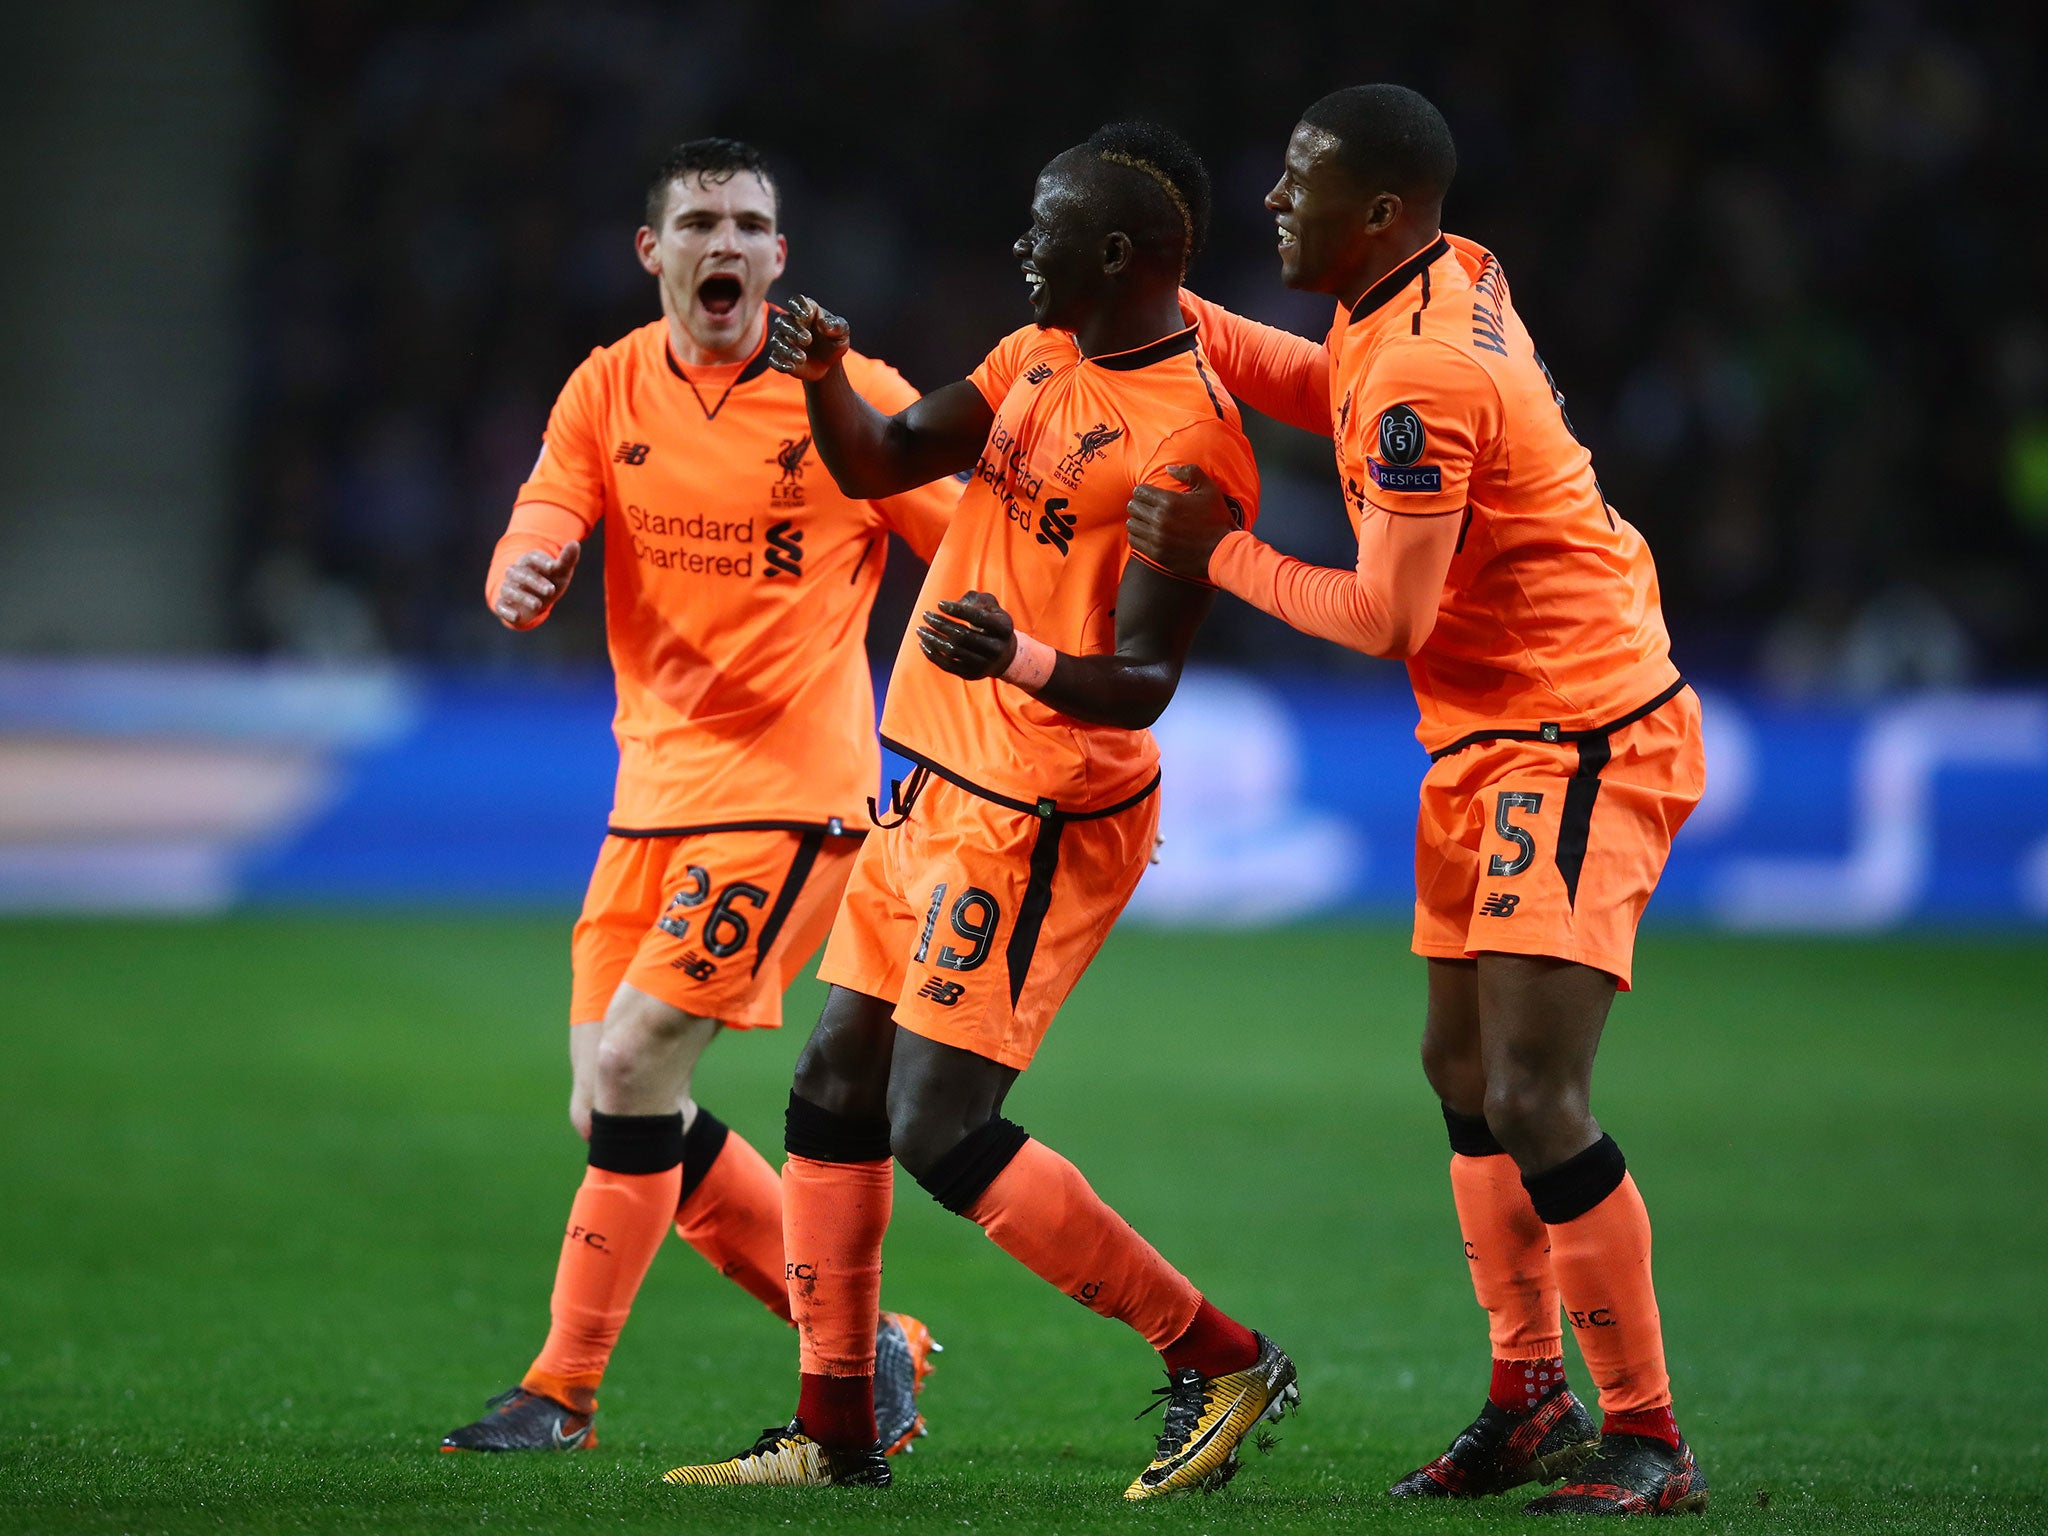 FC Porto vs Liverpool: 5 things we learned from the Reds' rousing Champions League victory